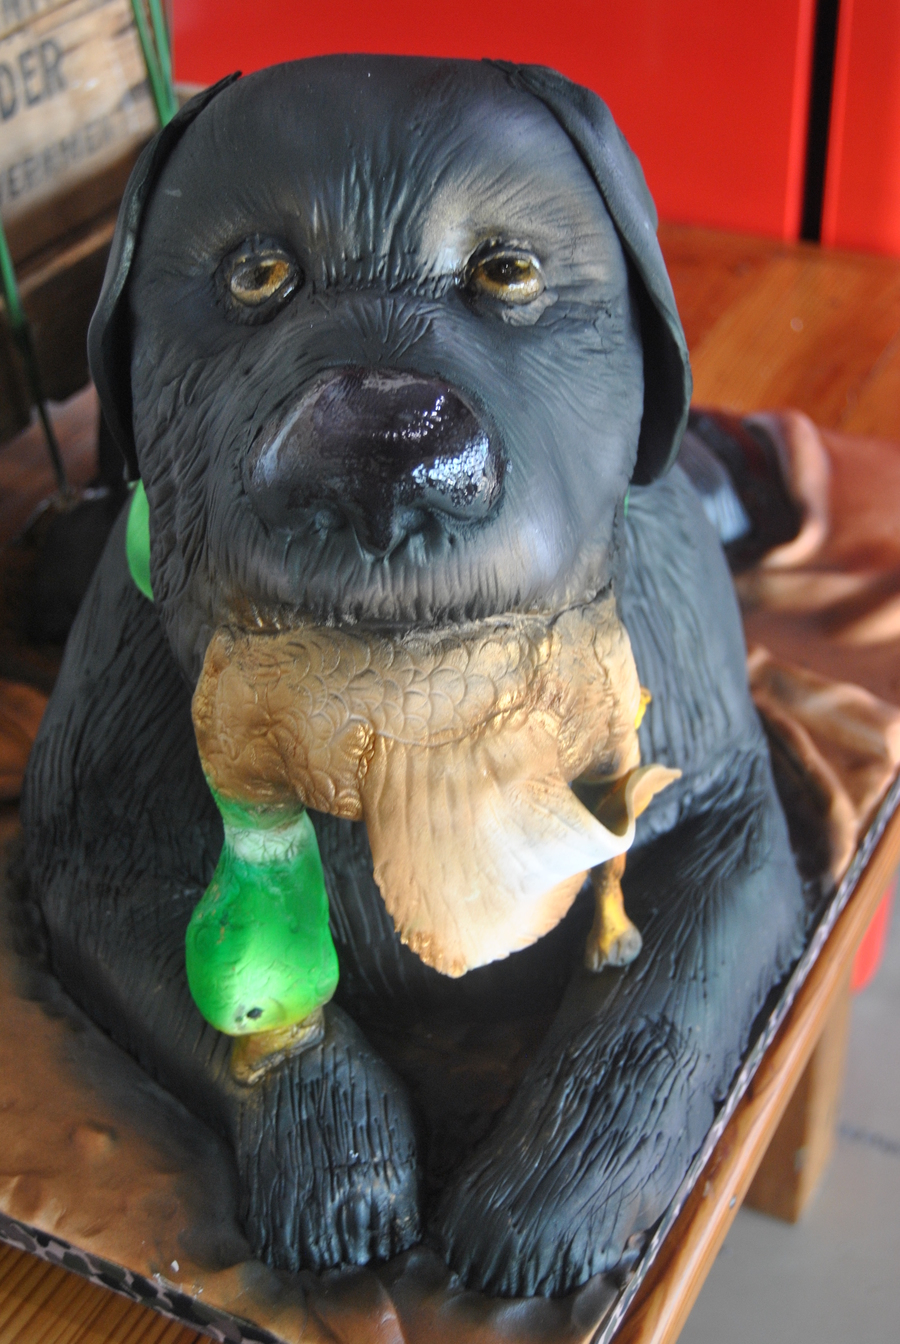 Groom Is A Duck Hunter And This Is A Likeness Of His Dog on Cake Central